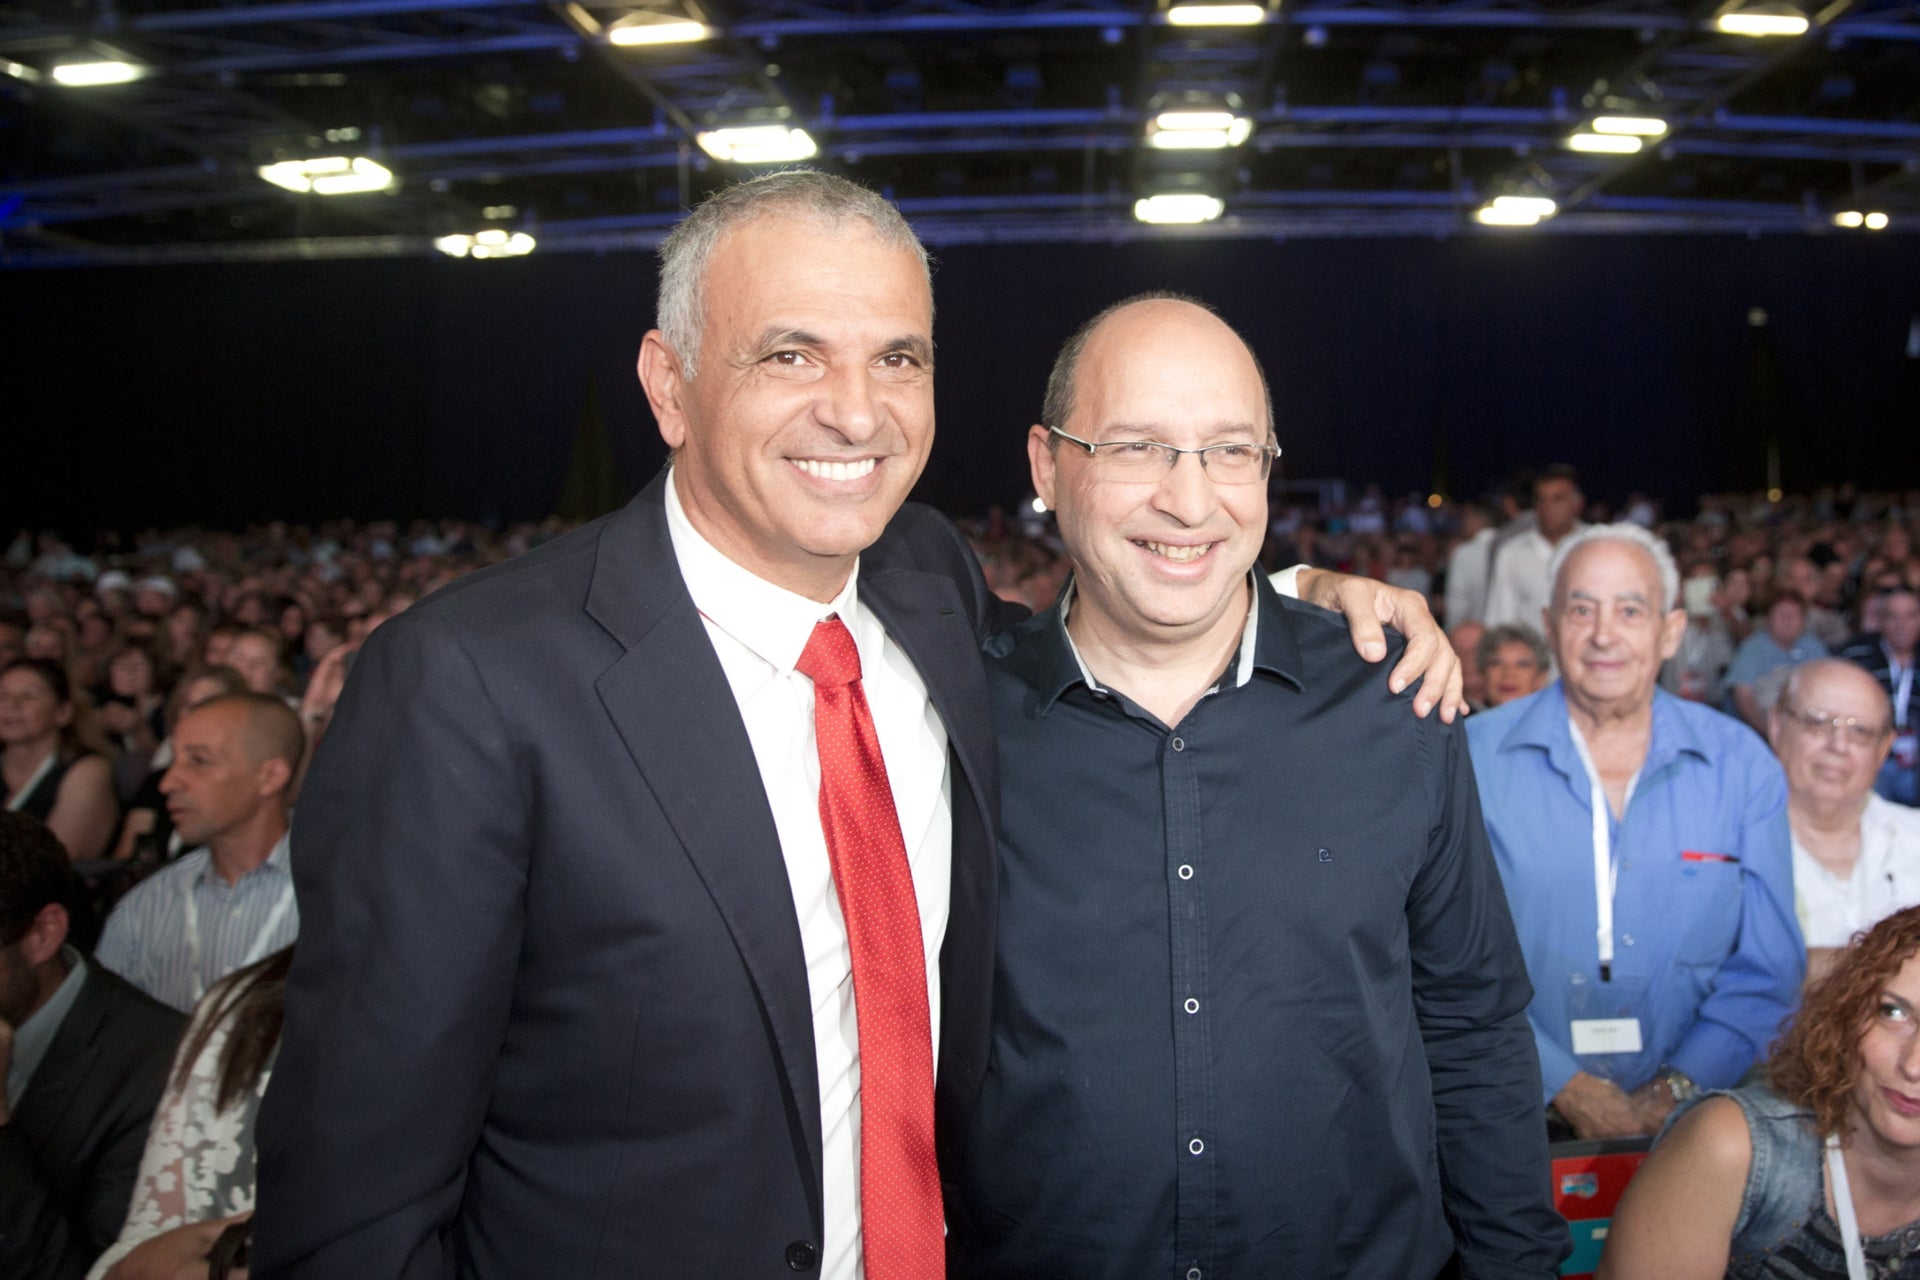 New Histadrut Chairman Avi Nissenkorn and Finance Minister Moshe Kahlon. Their political love affair got a steroid injection back in July 2017.